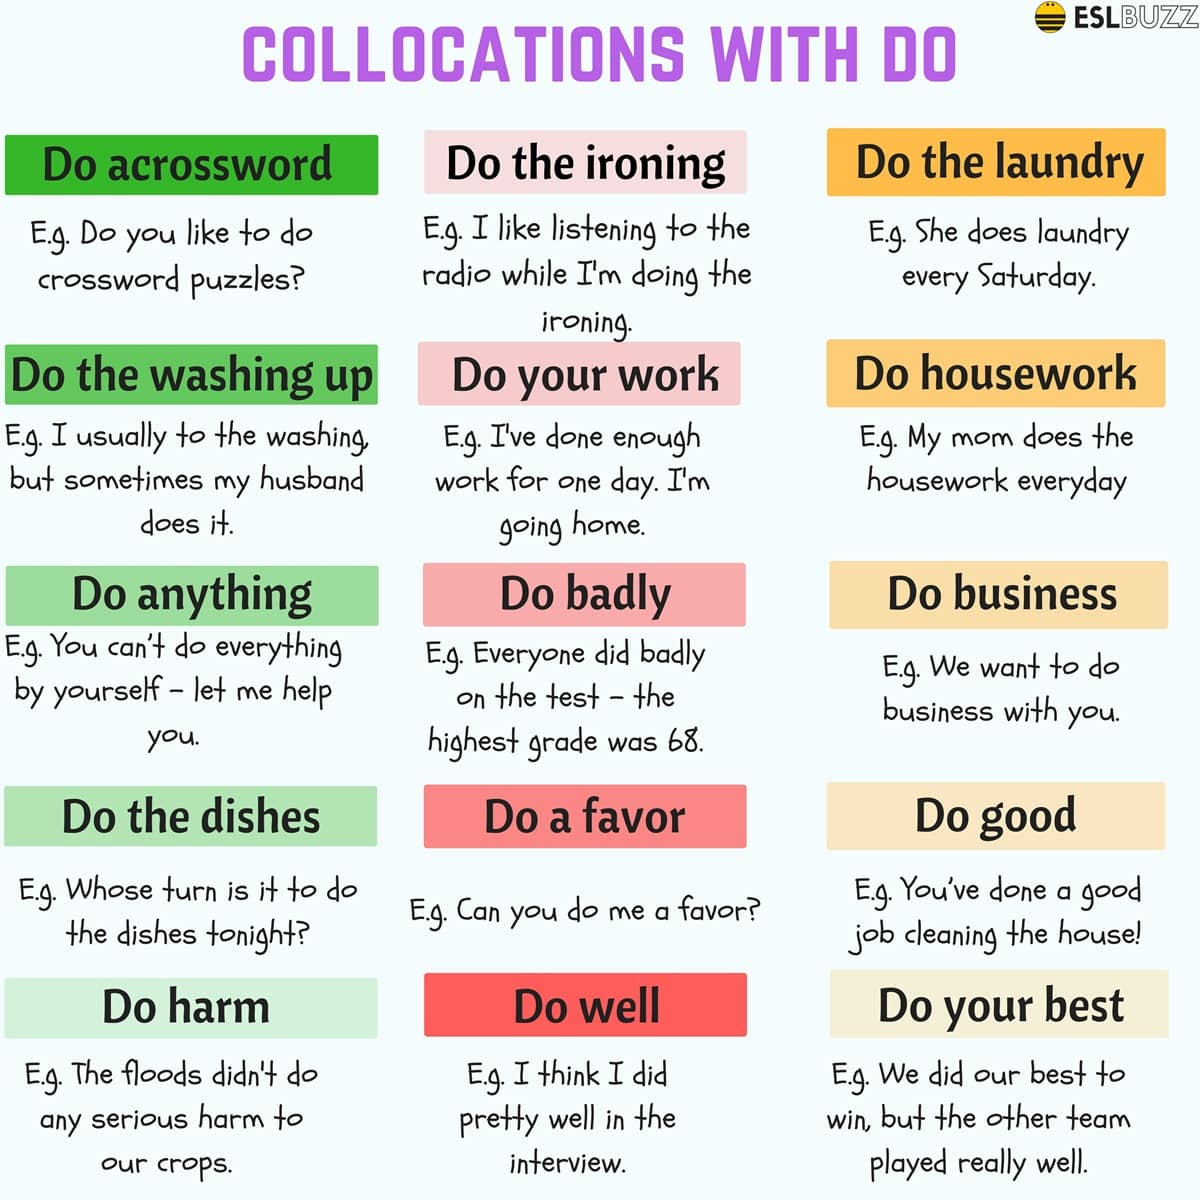 40 Most Common Collocations With Do In English